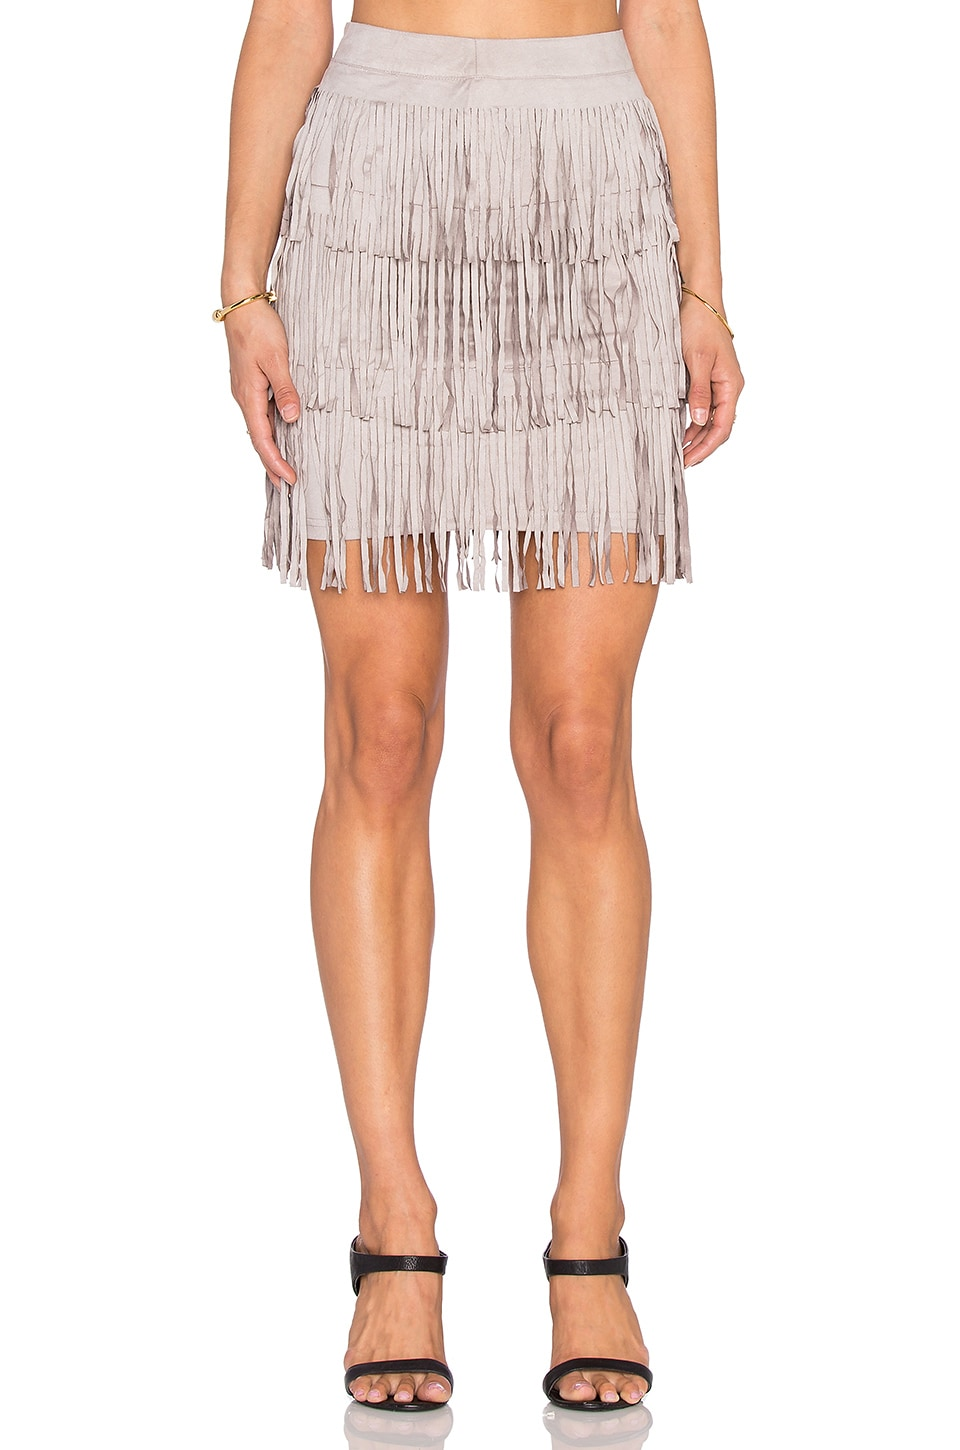 x Love Indie Stick Up Suede Fringe Skirt